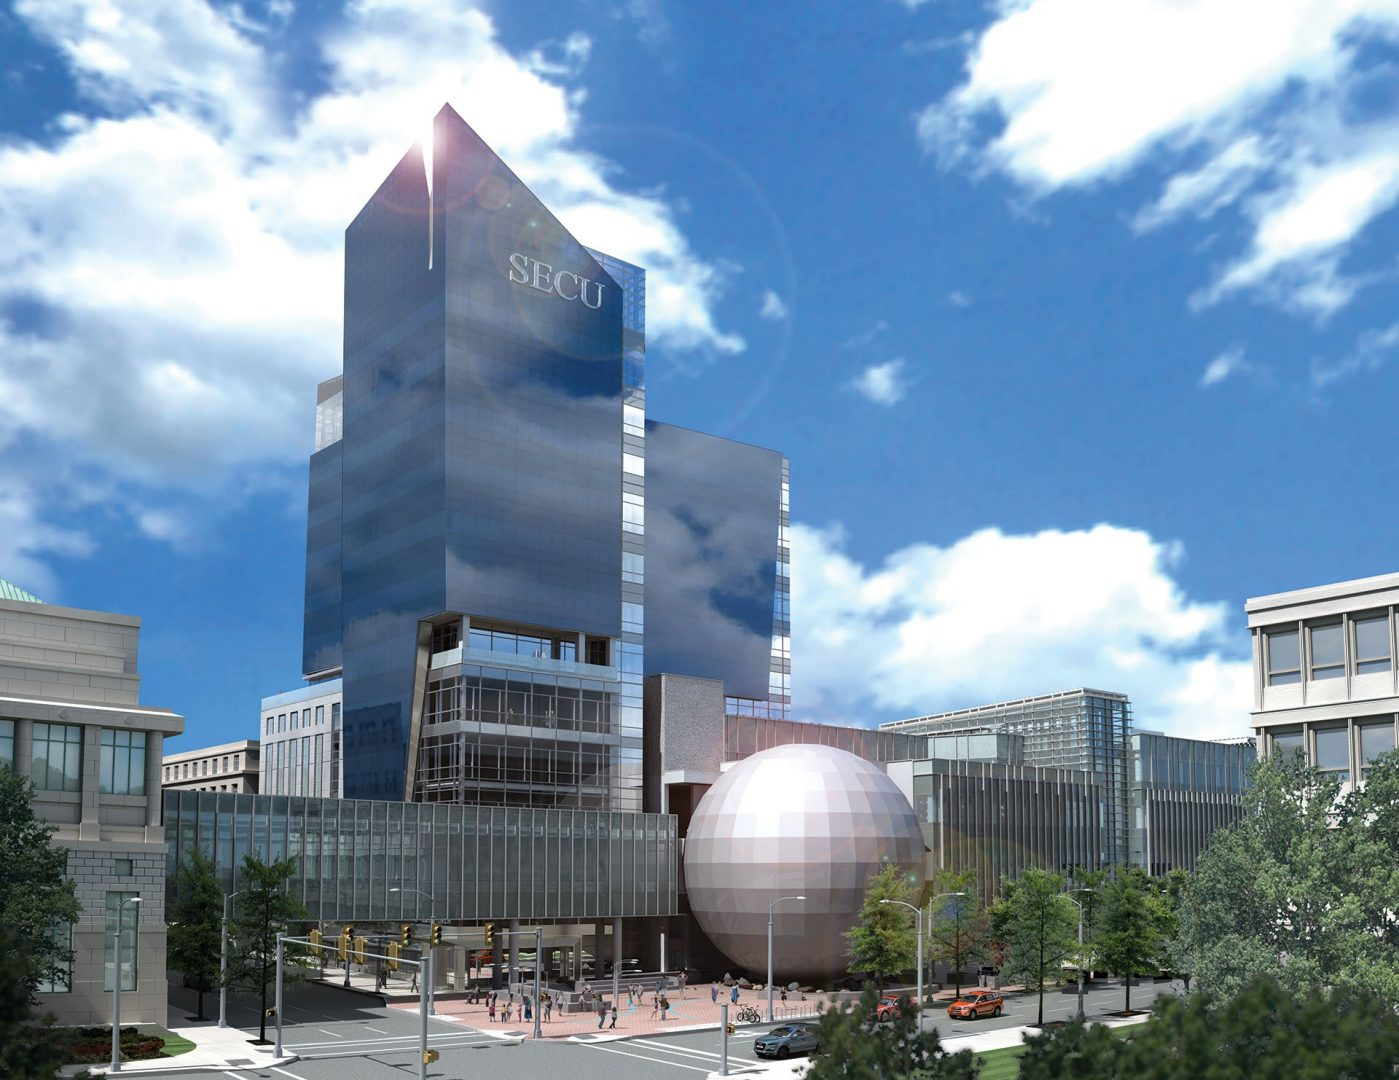 3d rendering made for the architecture firm designing the state employees credit union building in raleigh nc